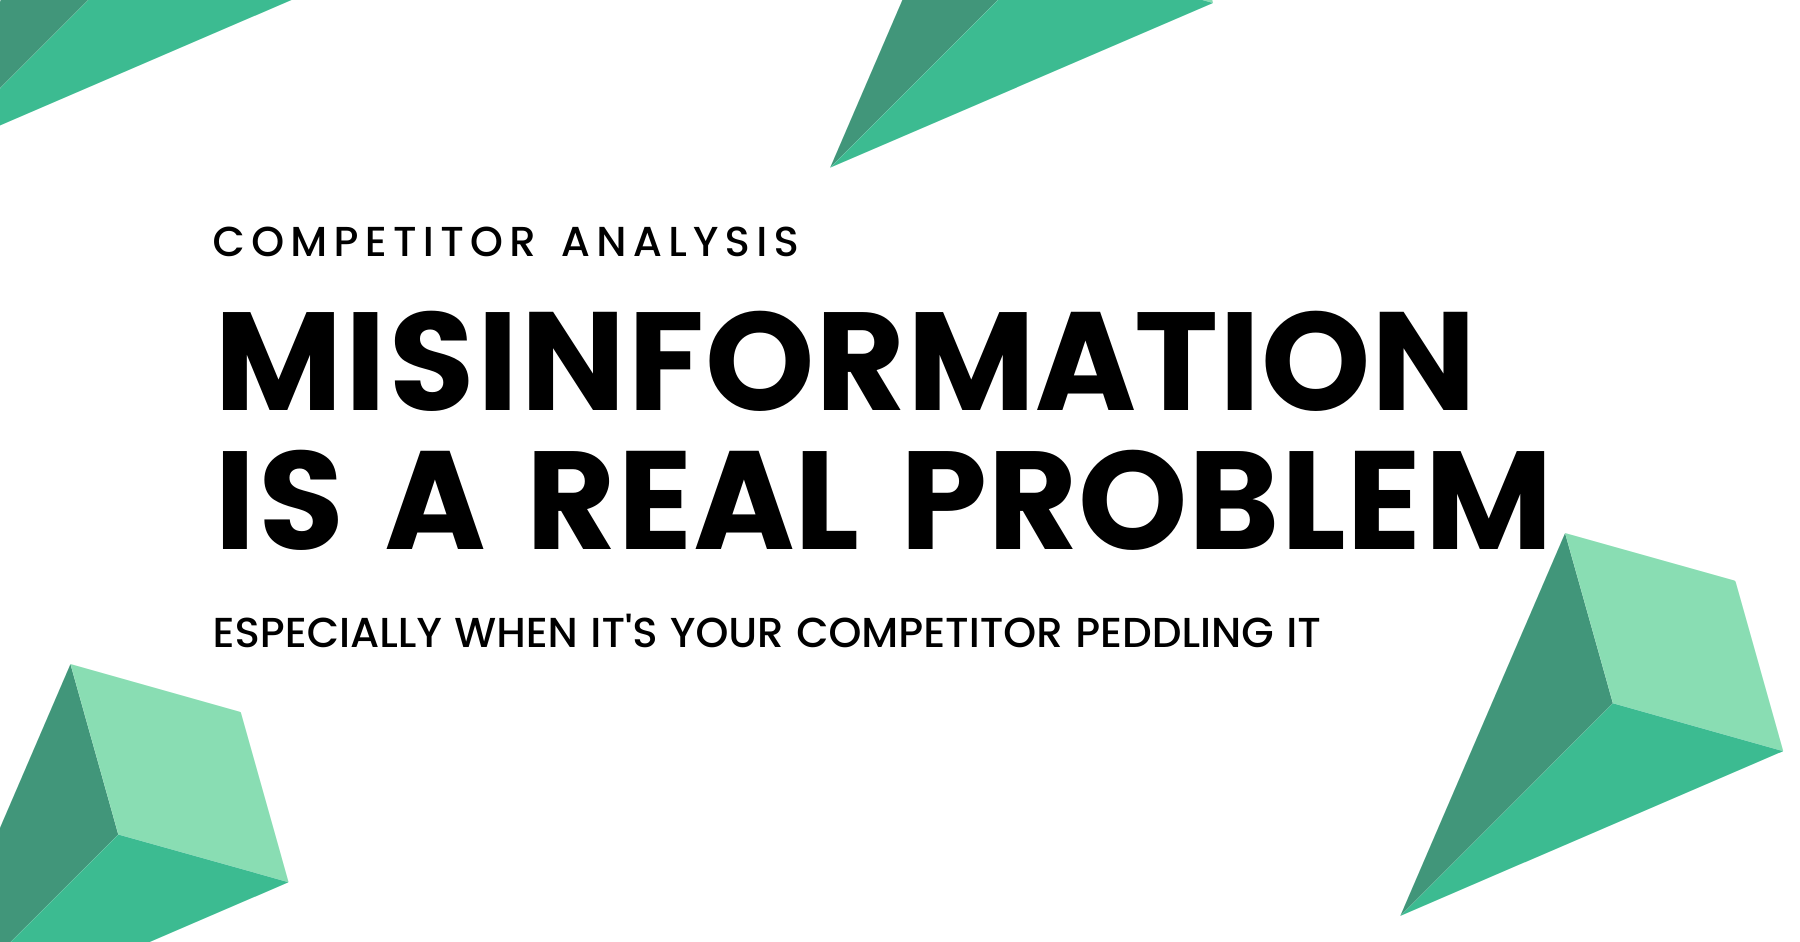 Misinformation is a real problem, especially when it's your competitor peddling it.